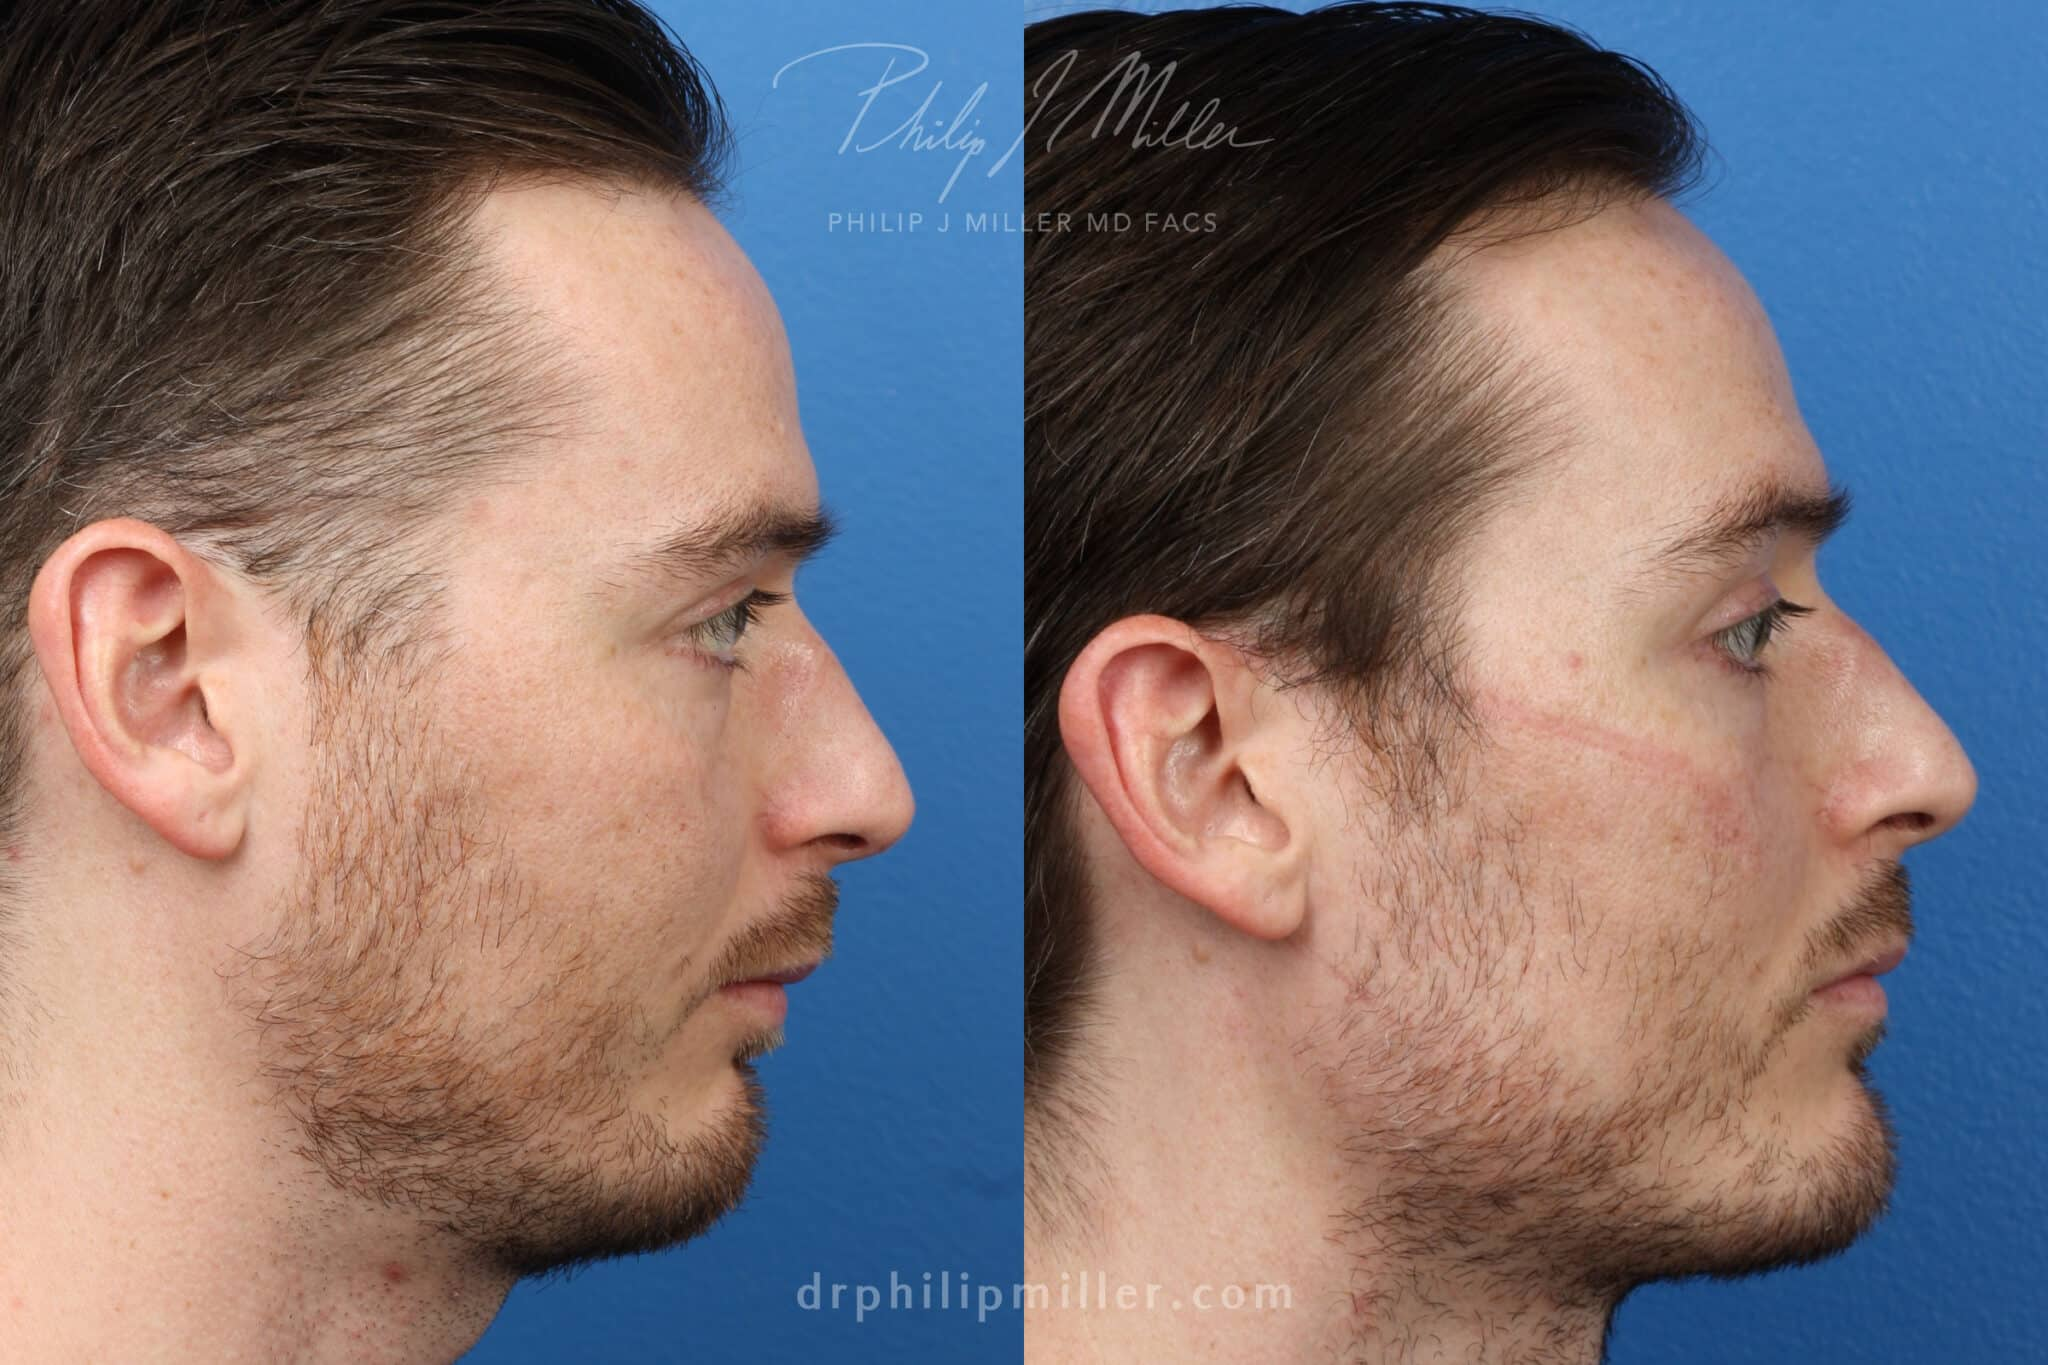 Chin implant to strengthen chin by Dr. Miller